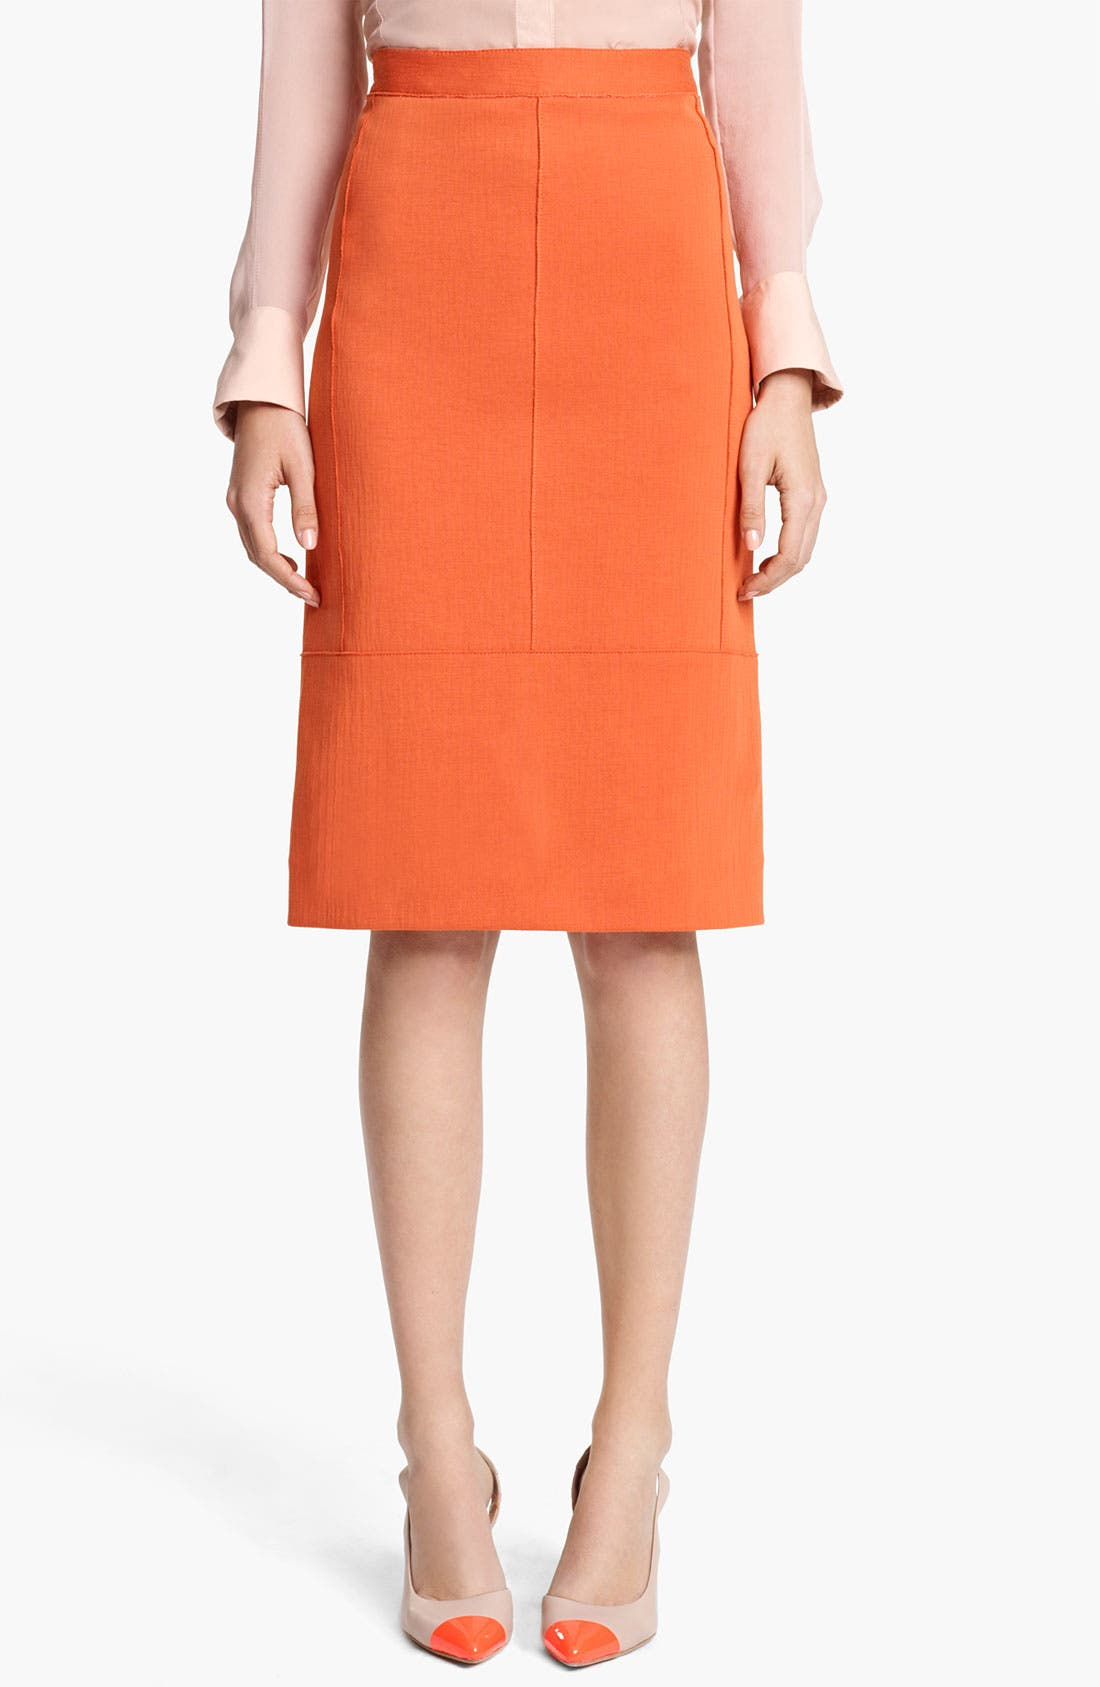 REED KRAKOFF Seamed Jersey Skirt, Main, color, 810